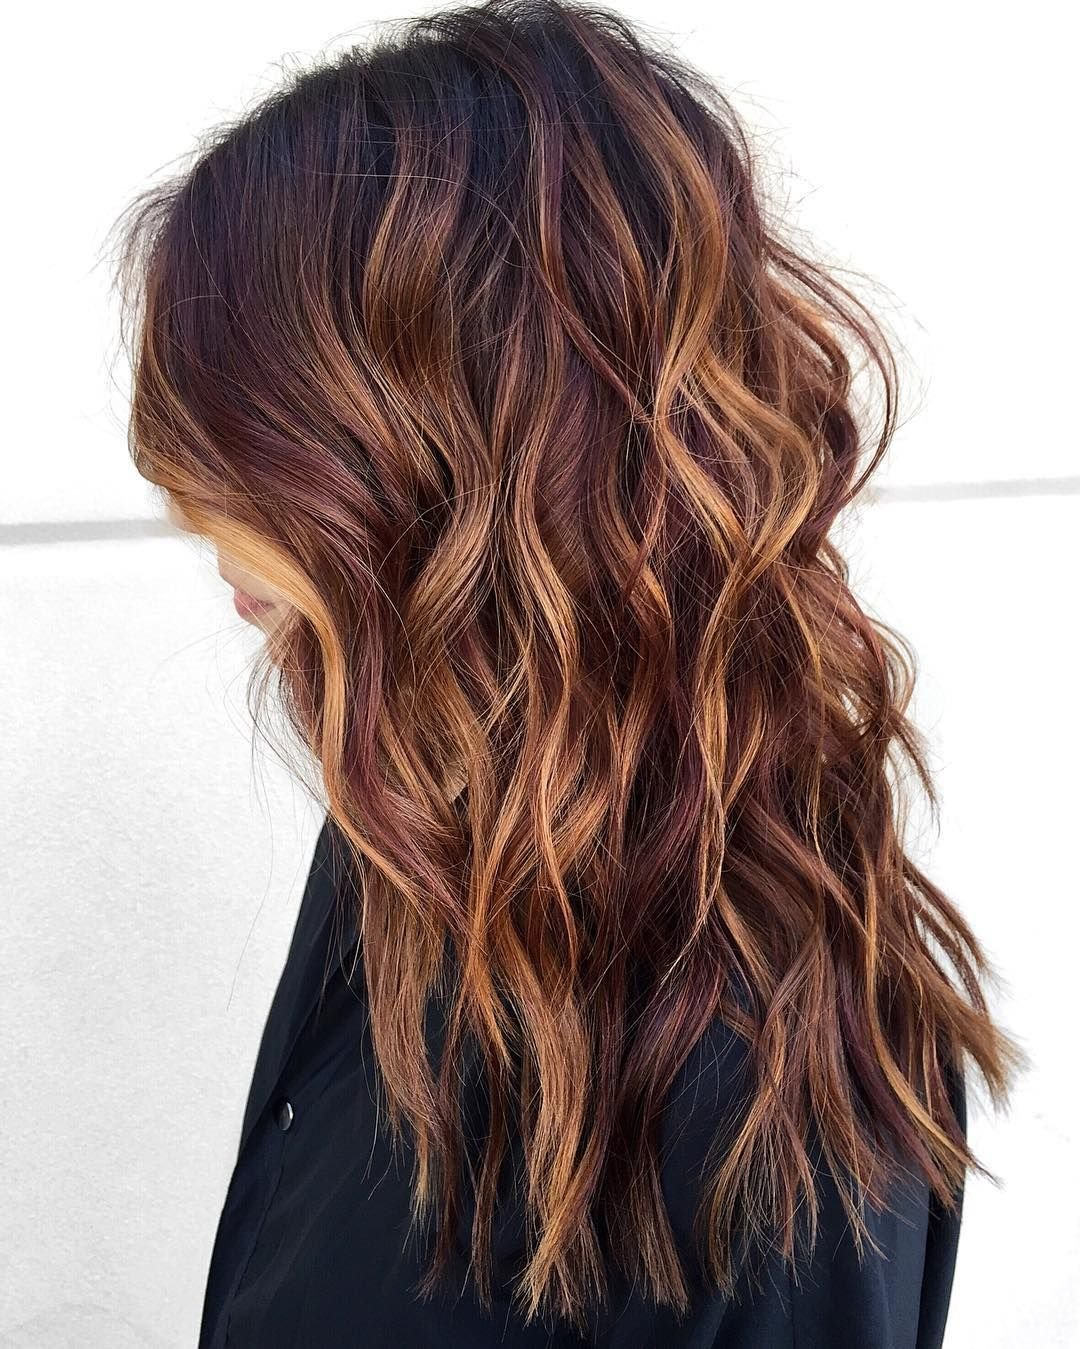 New 60 Brilliant Medium Brown Hair Color Ideas — Softest Ideas With Pictures